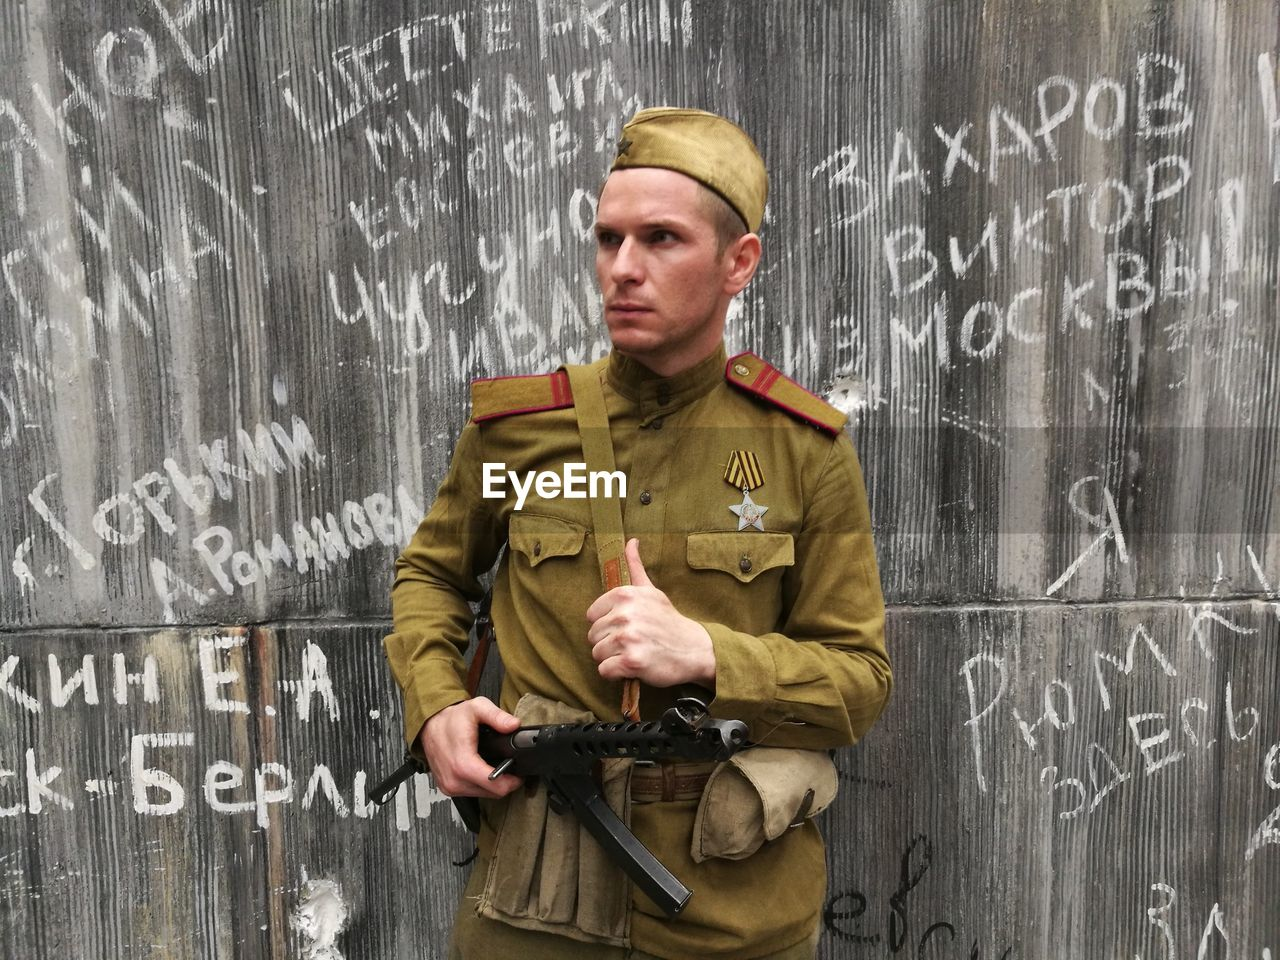 Portrait of army soldier with gun standing against graffiti wall